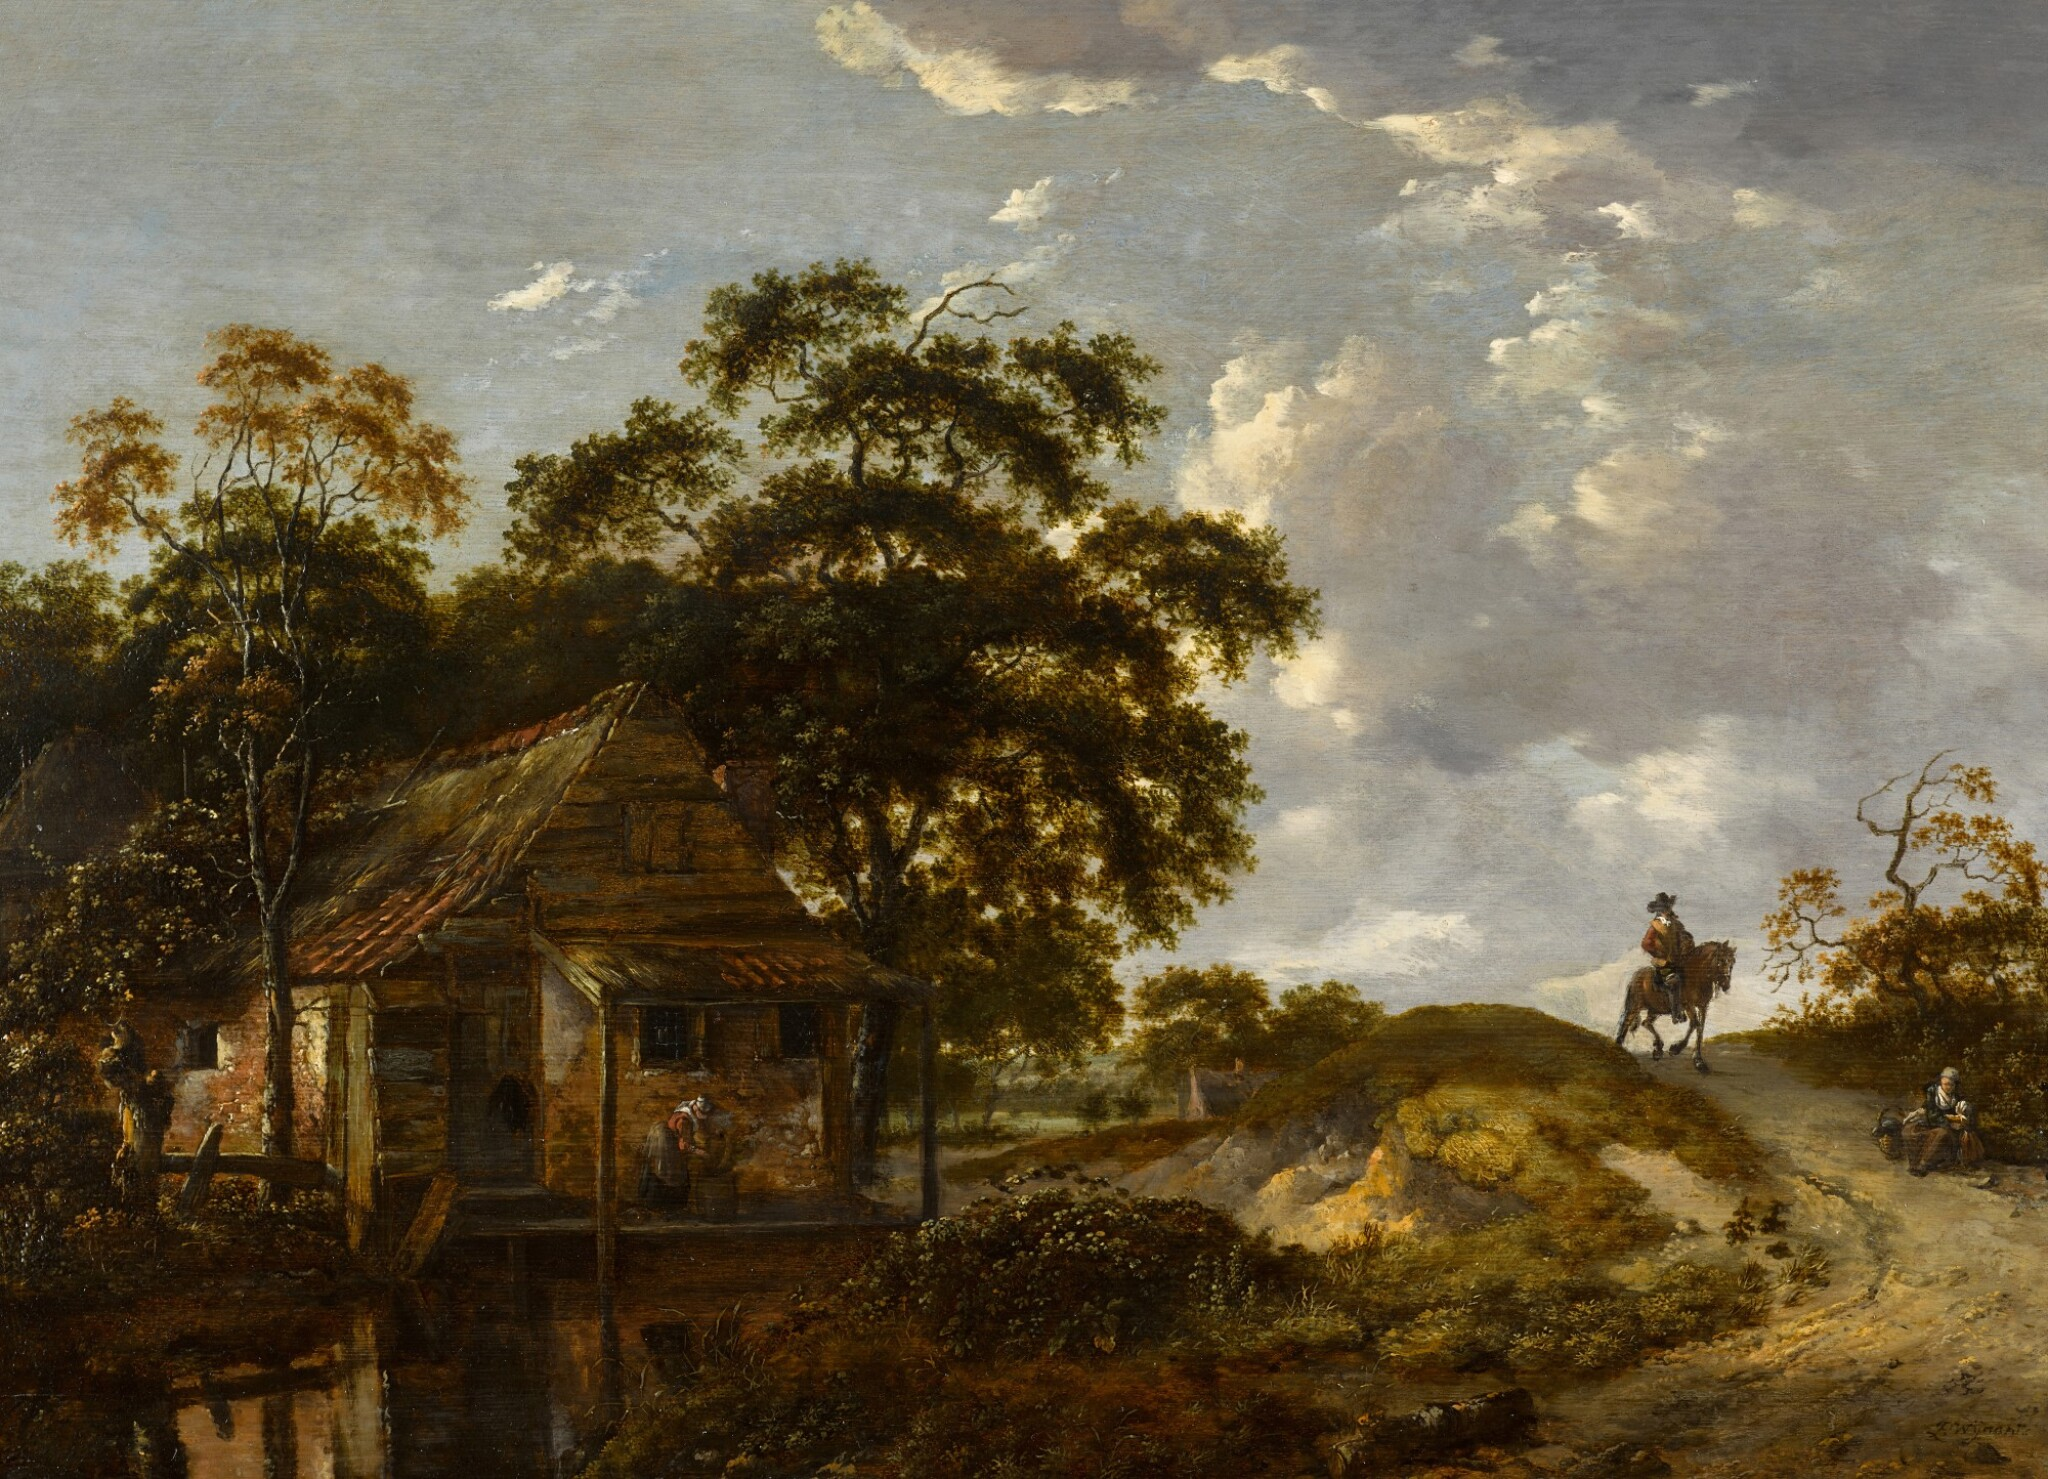 View 1 of Lot 153. Landscape with a cottage by a river and a woman scouring a pot, a gentleman on horseback on a path.